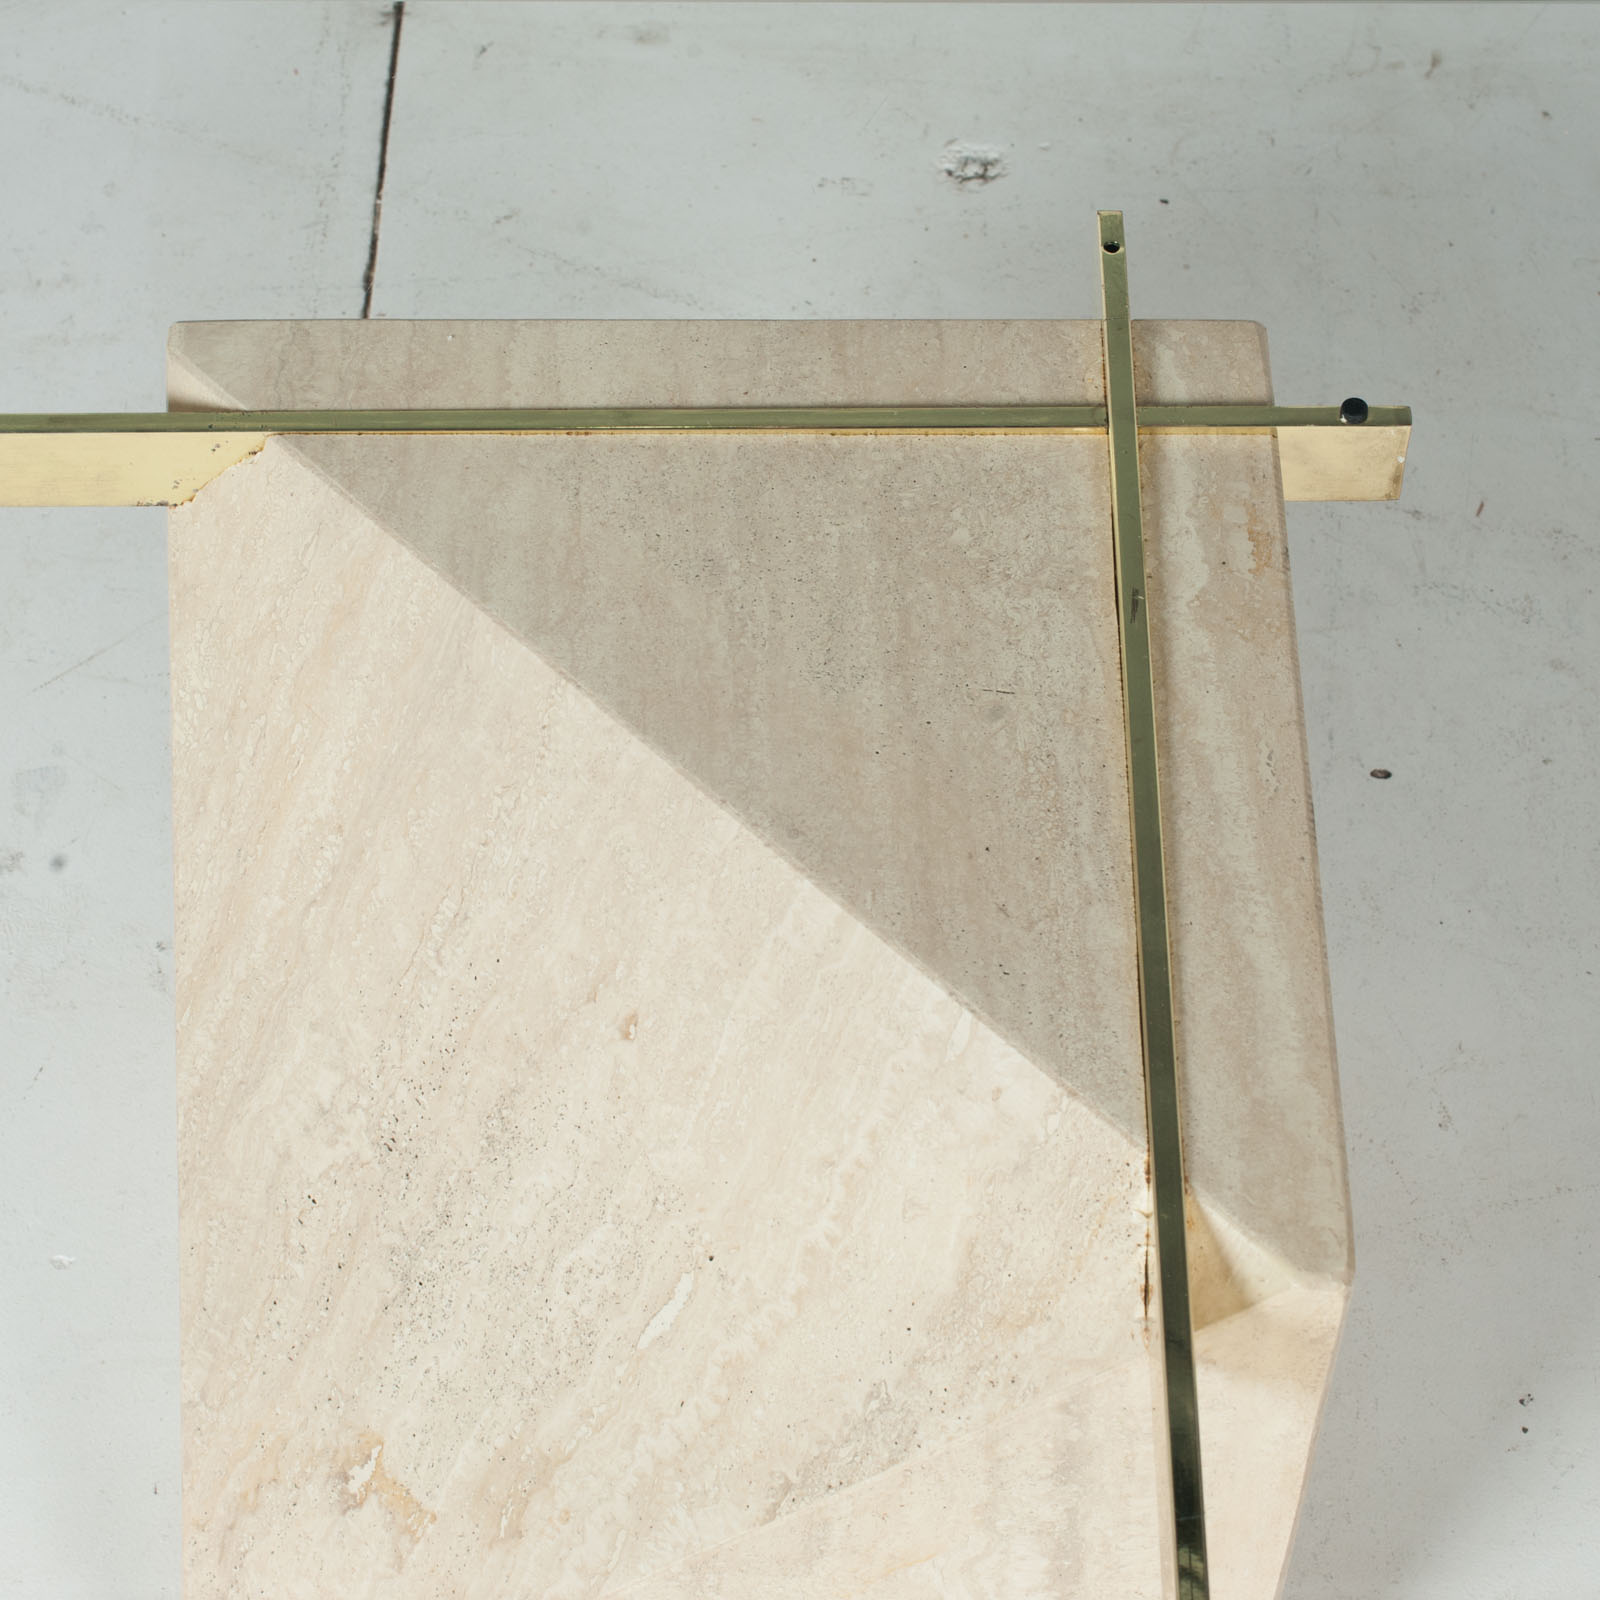 Coffee Table By Artedi In Travertine, Cantilevered Glass And Brass, 1970s, Italy4